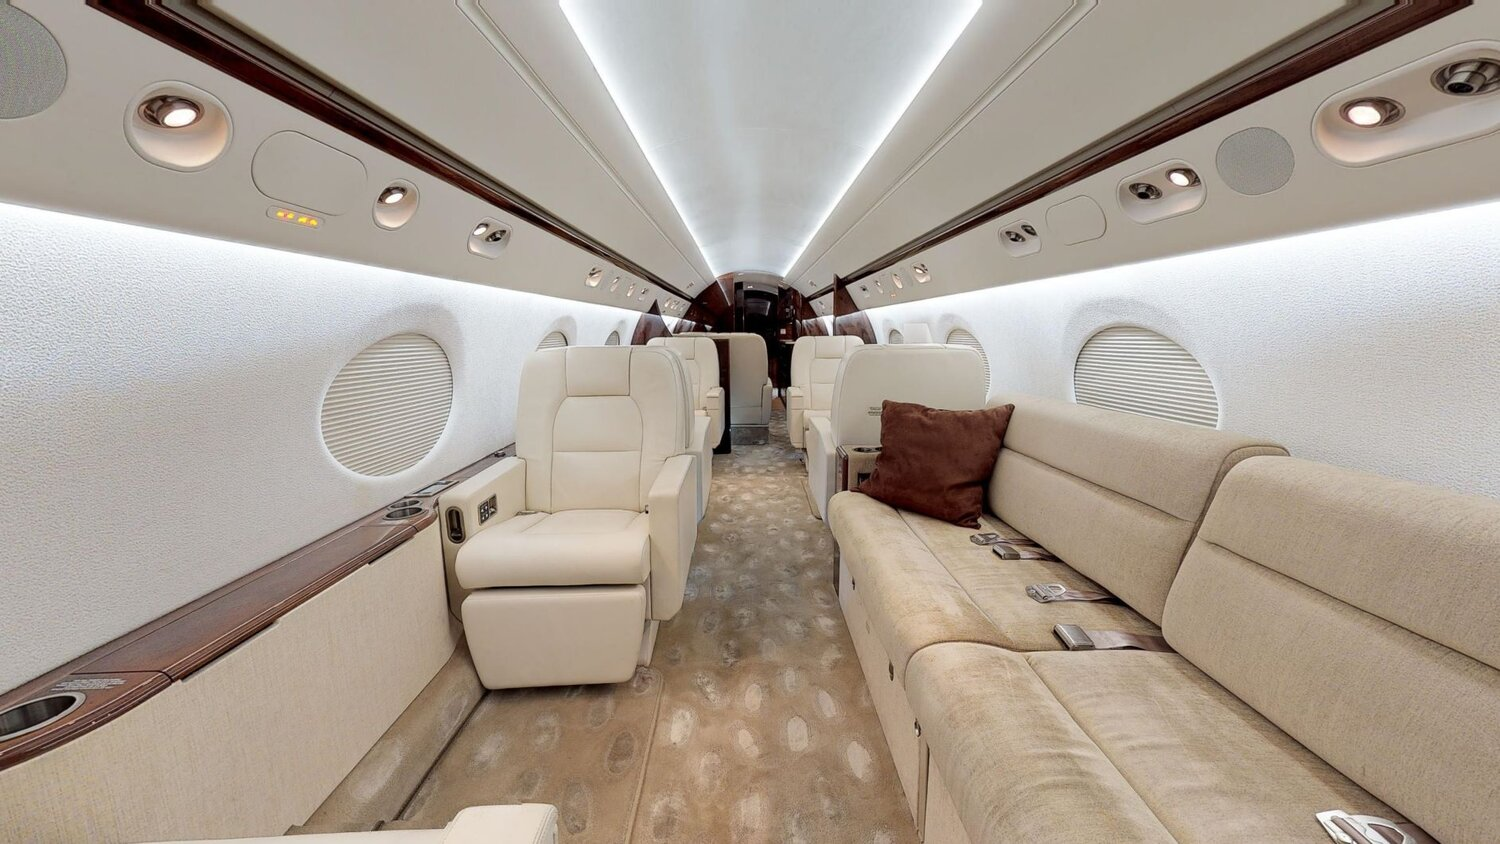 Gulfstream IV, SN 1052 For Sale or Lease